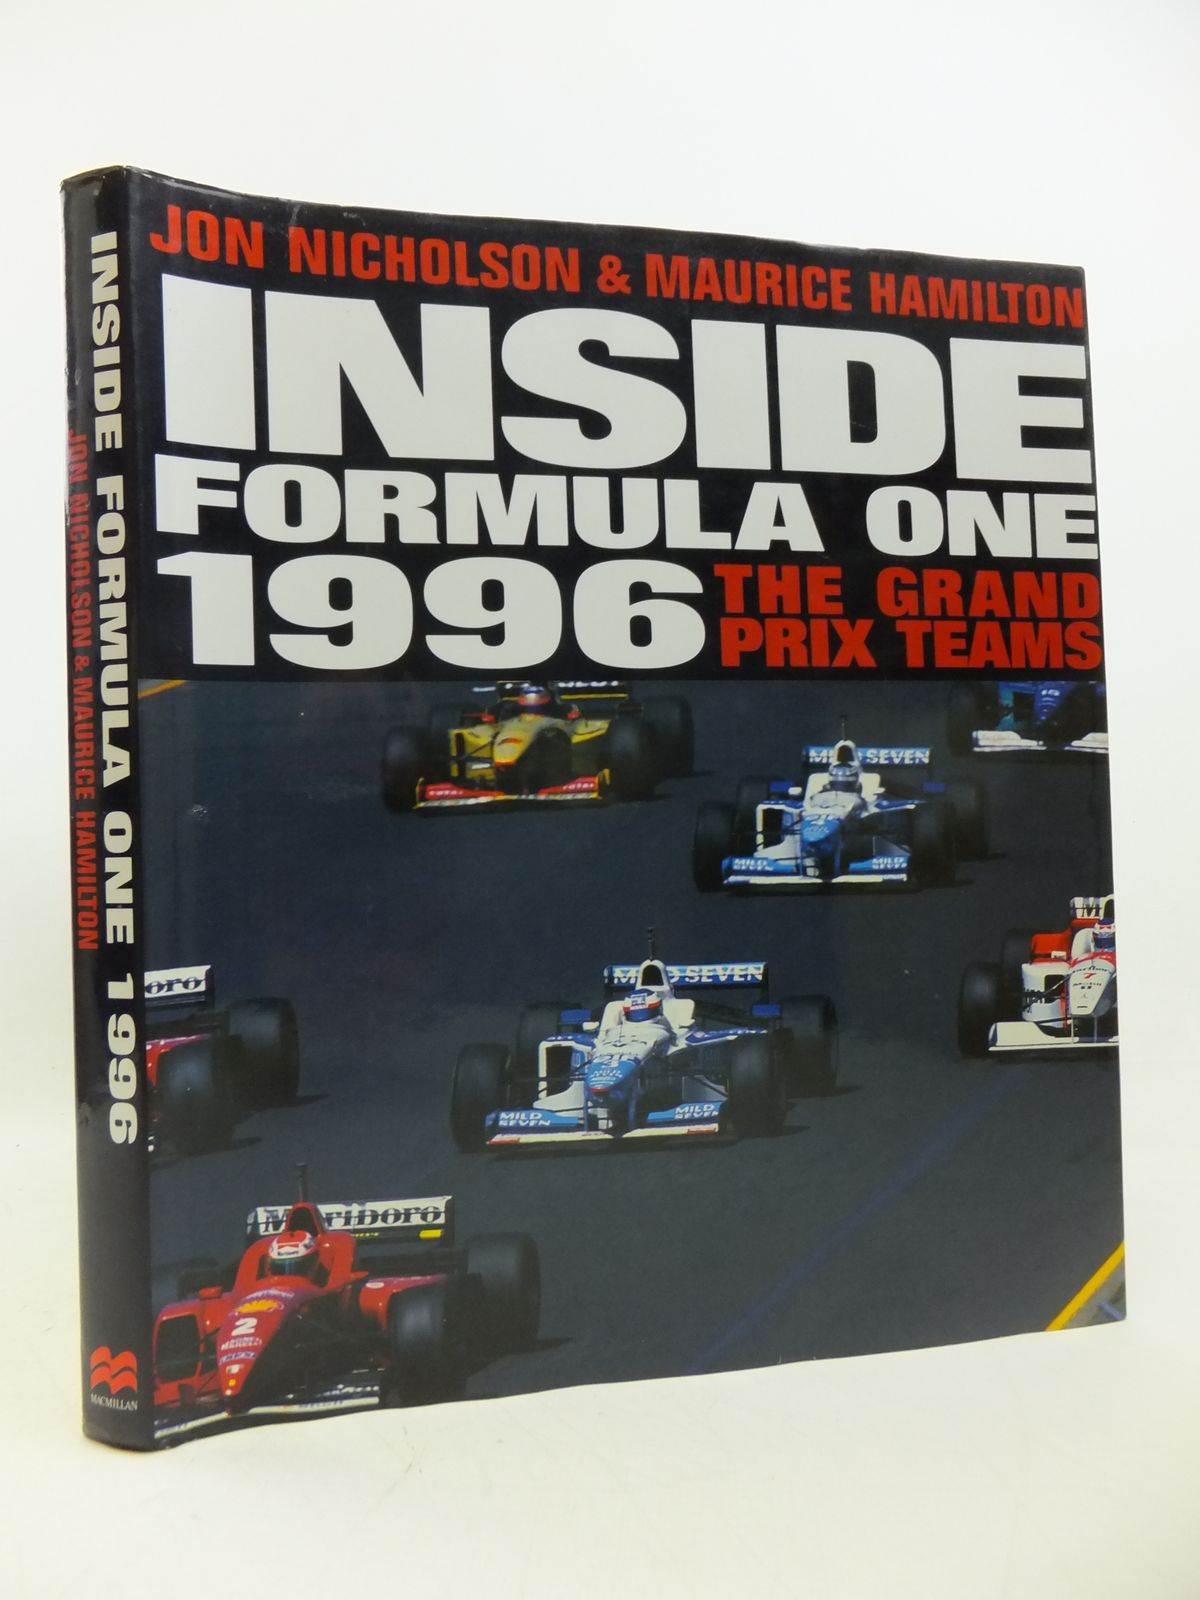 Photo of INSIDE FORMULA ONE 1996: THE GRAND PRIX TEAMS written by Nicholson, Jon Hamilton, Maurice published by MacMillan (STOCK CODE: 1808598)  for sale by Stella & Rose's Books